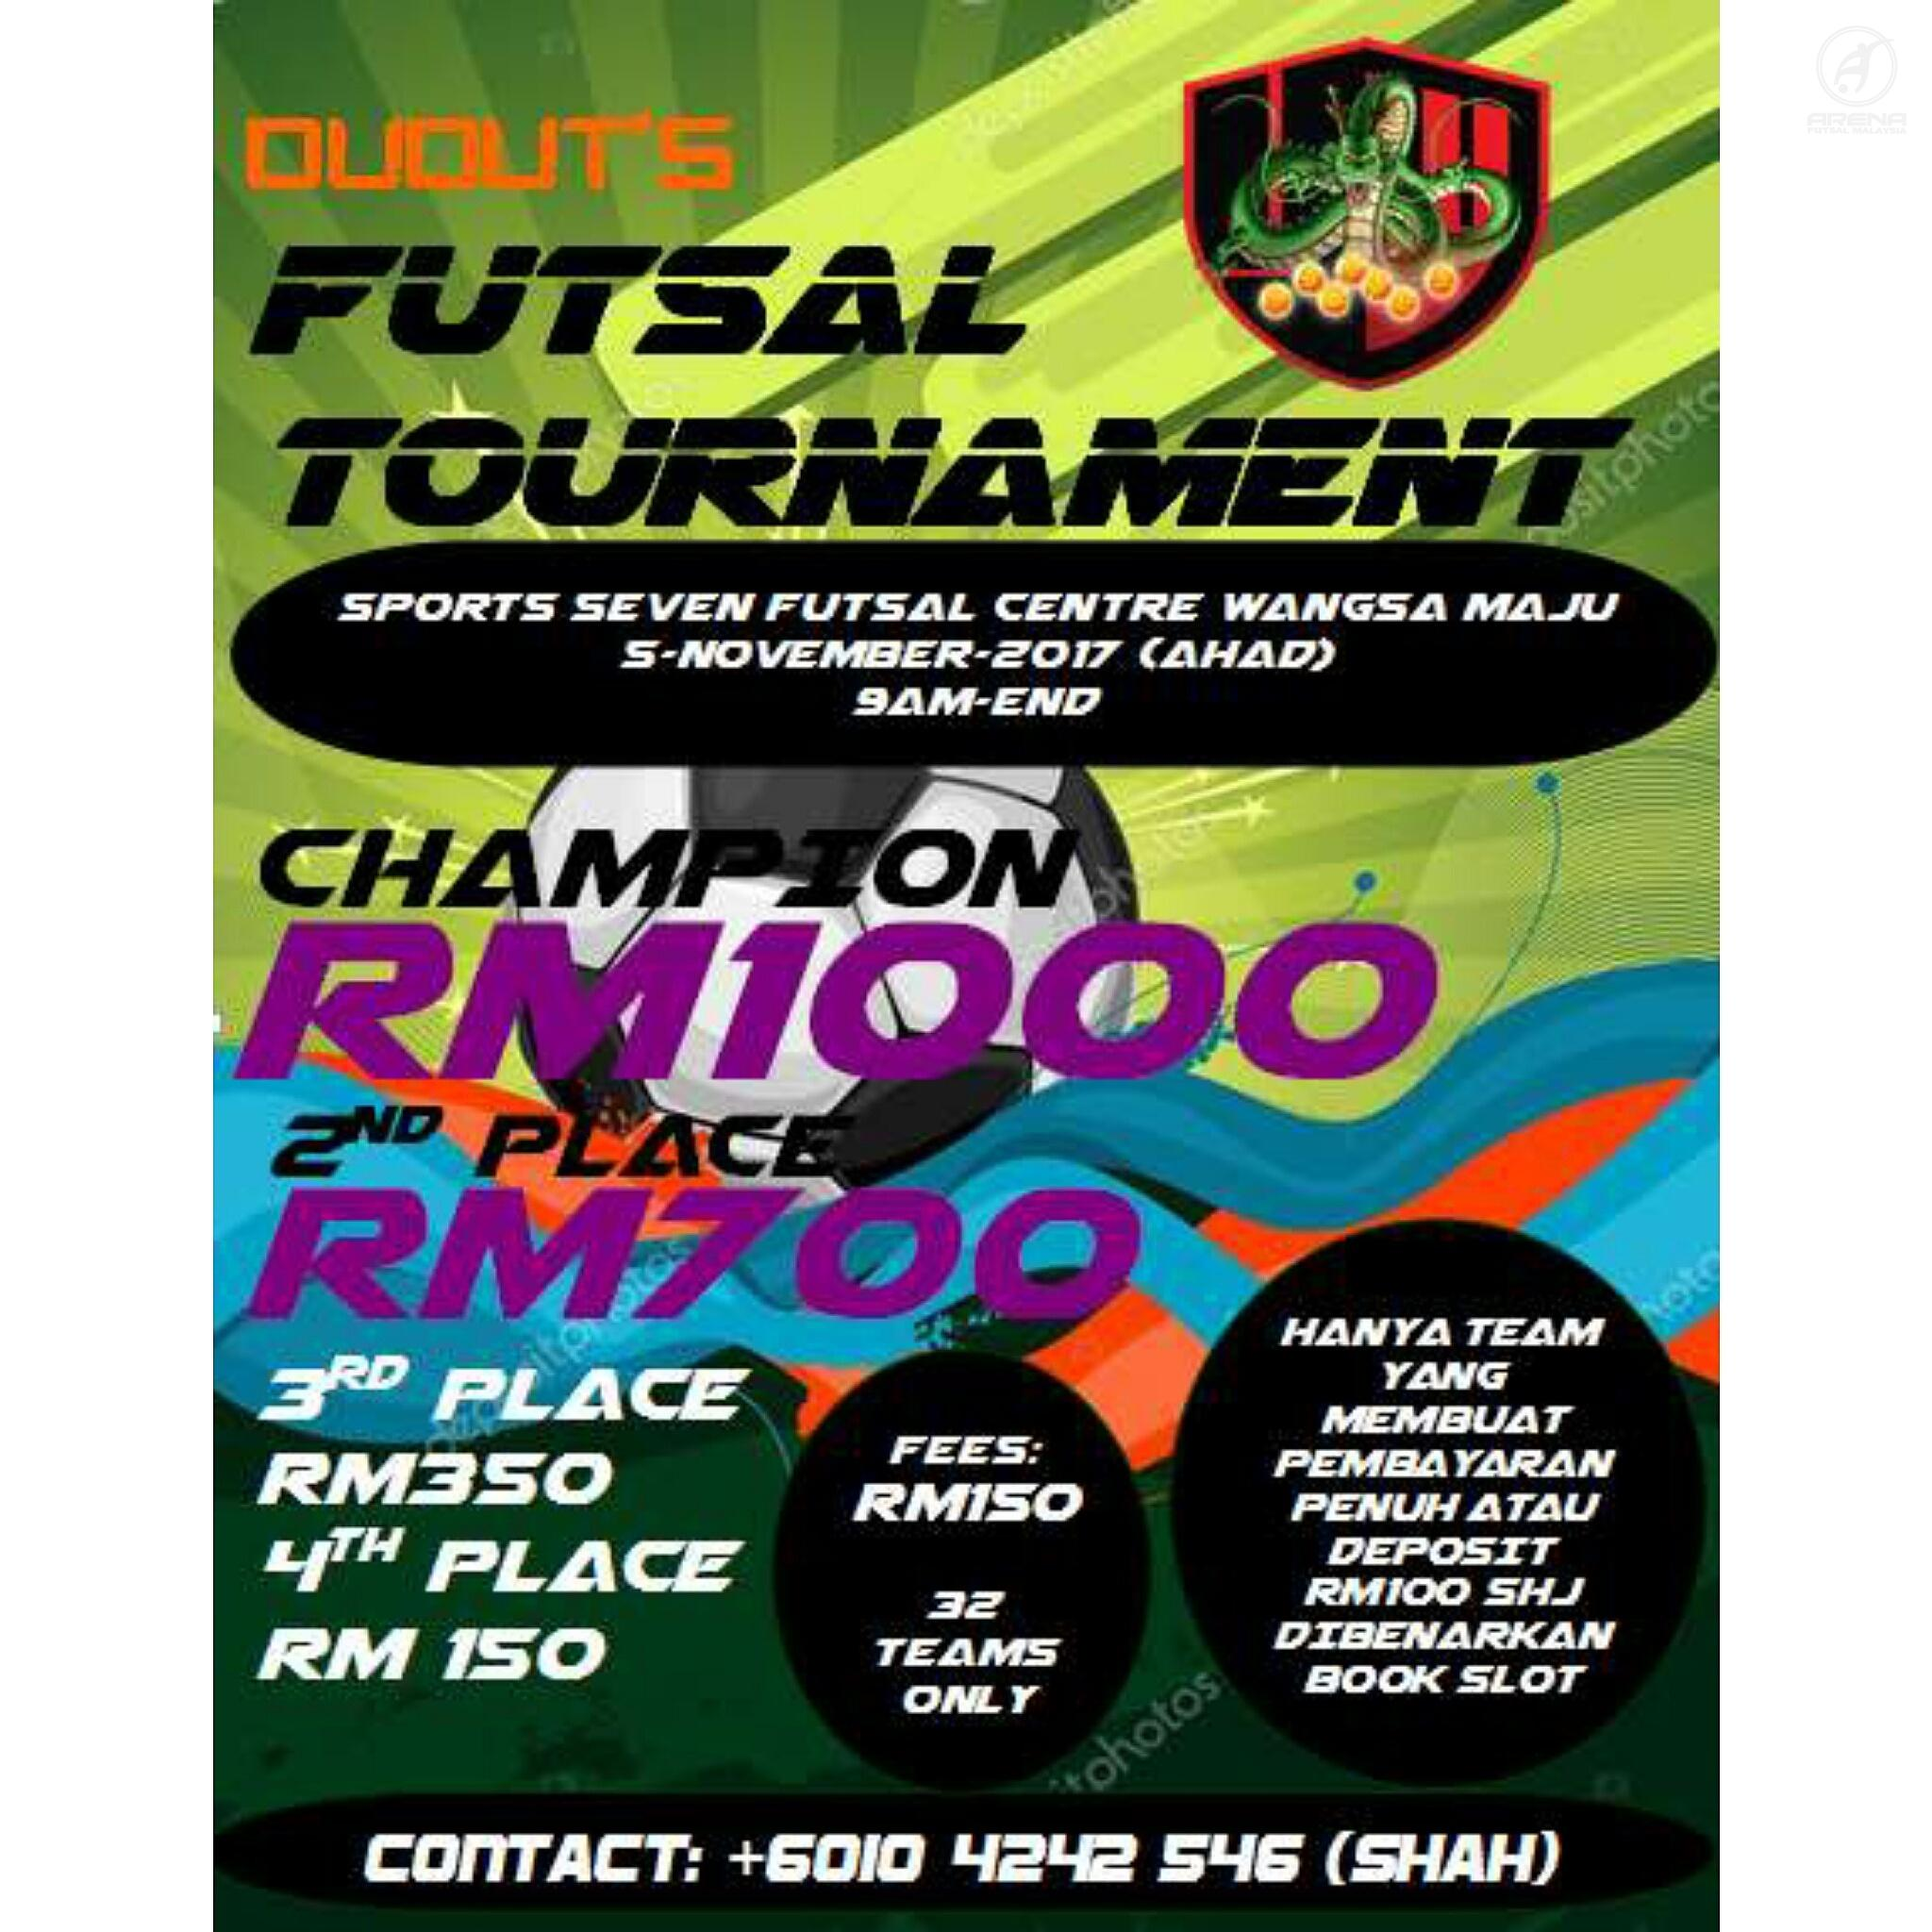 Duduts Futsal Tournament @ Sports 7 Futsal Wangsa Maju